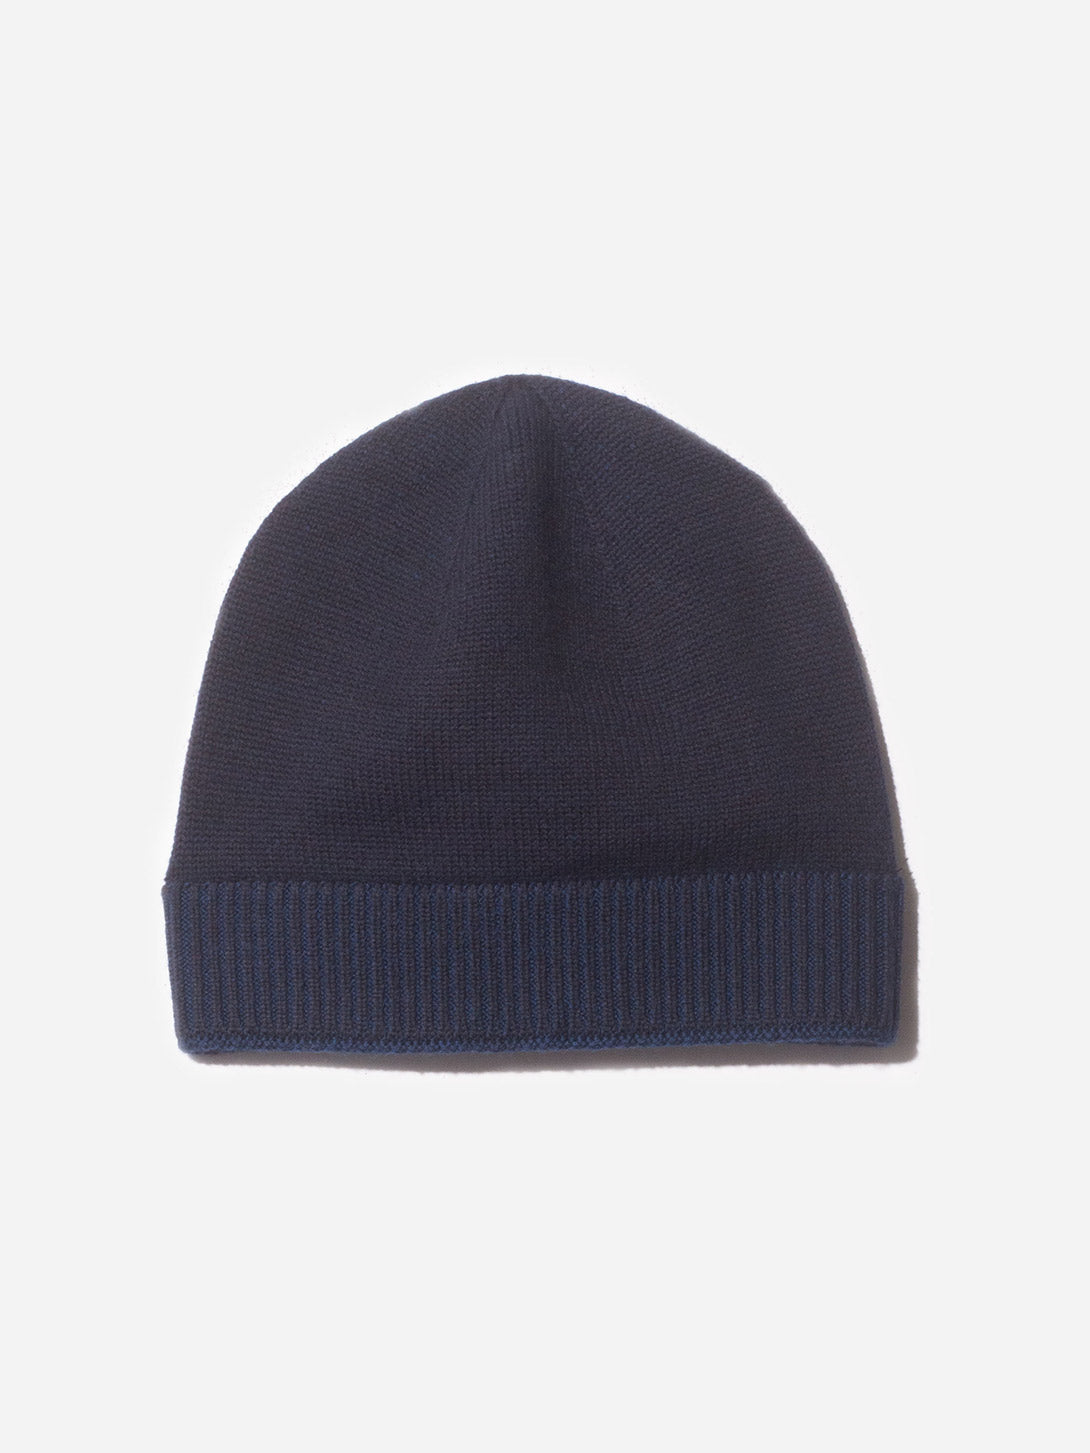 SUMMIT KNIT CAP NAVY